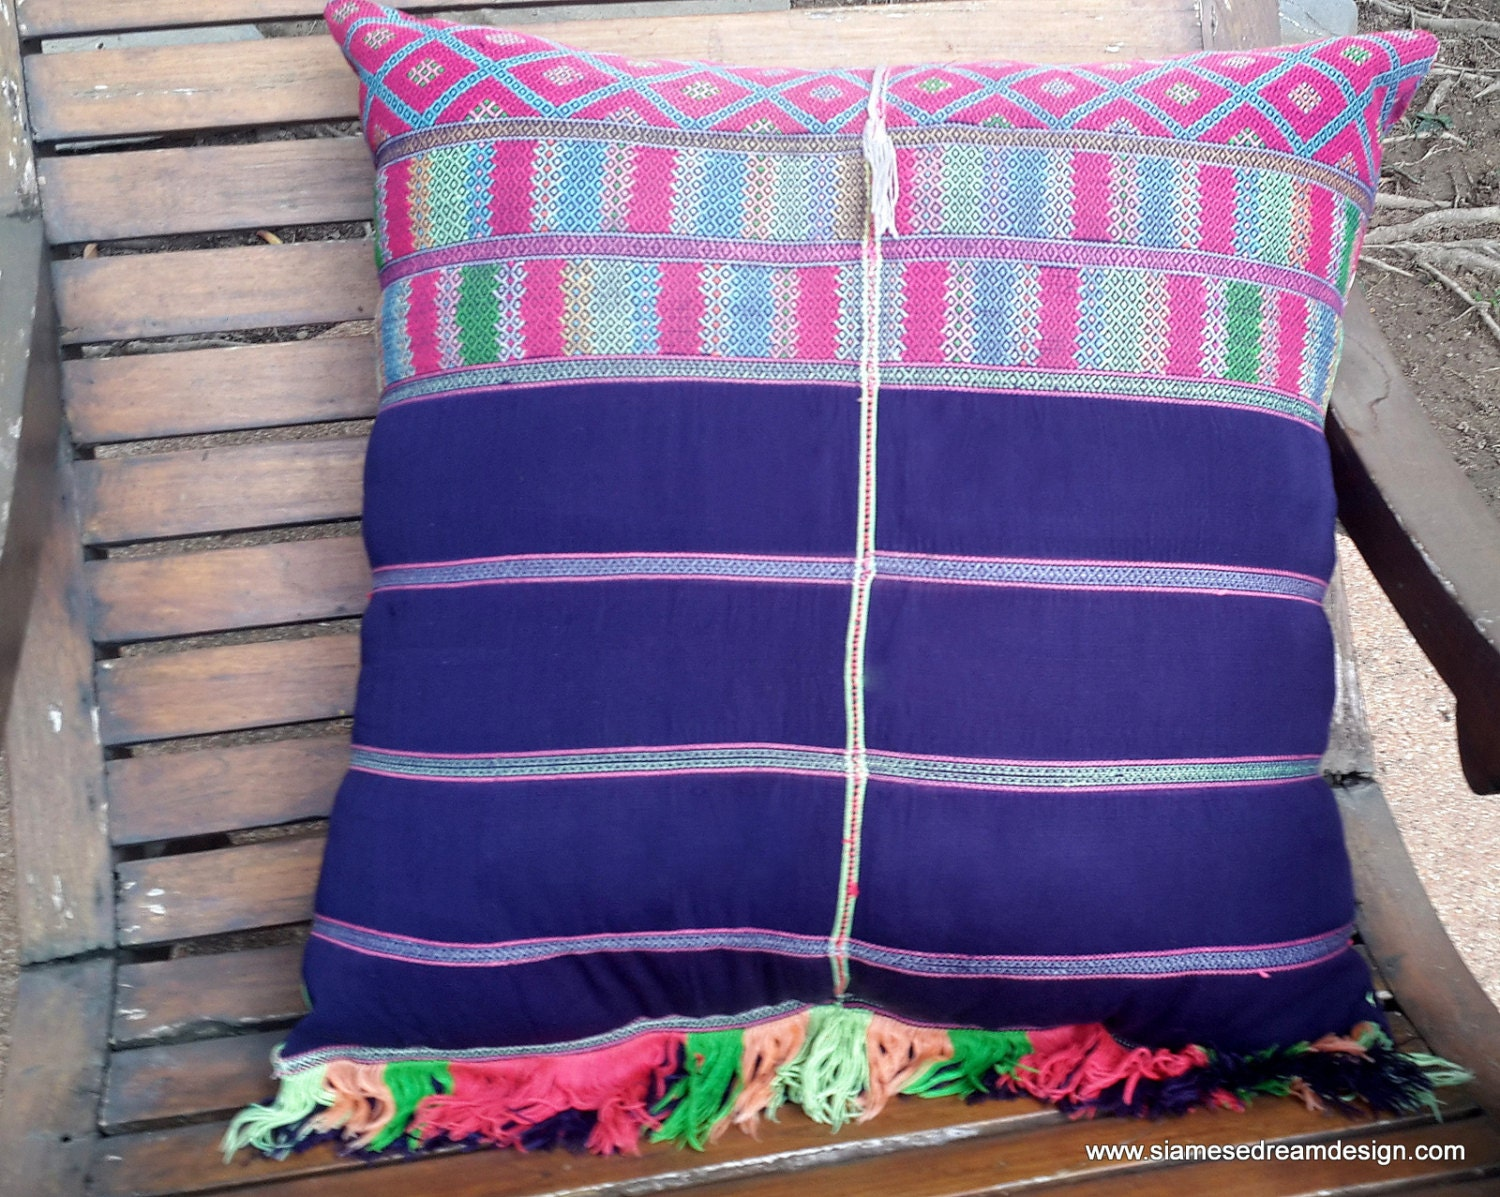 Floor Pillow To Watch Tv : XL Fringed Floor Pillow / Boho Cushion Cover in Colorful